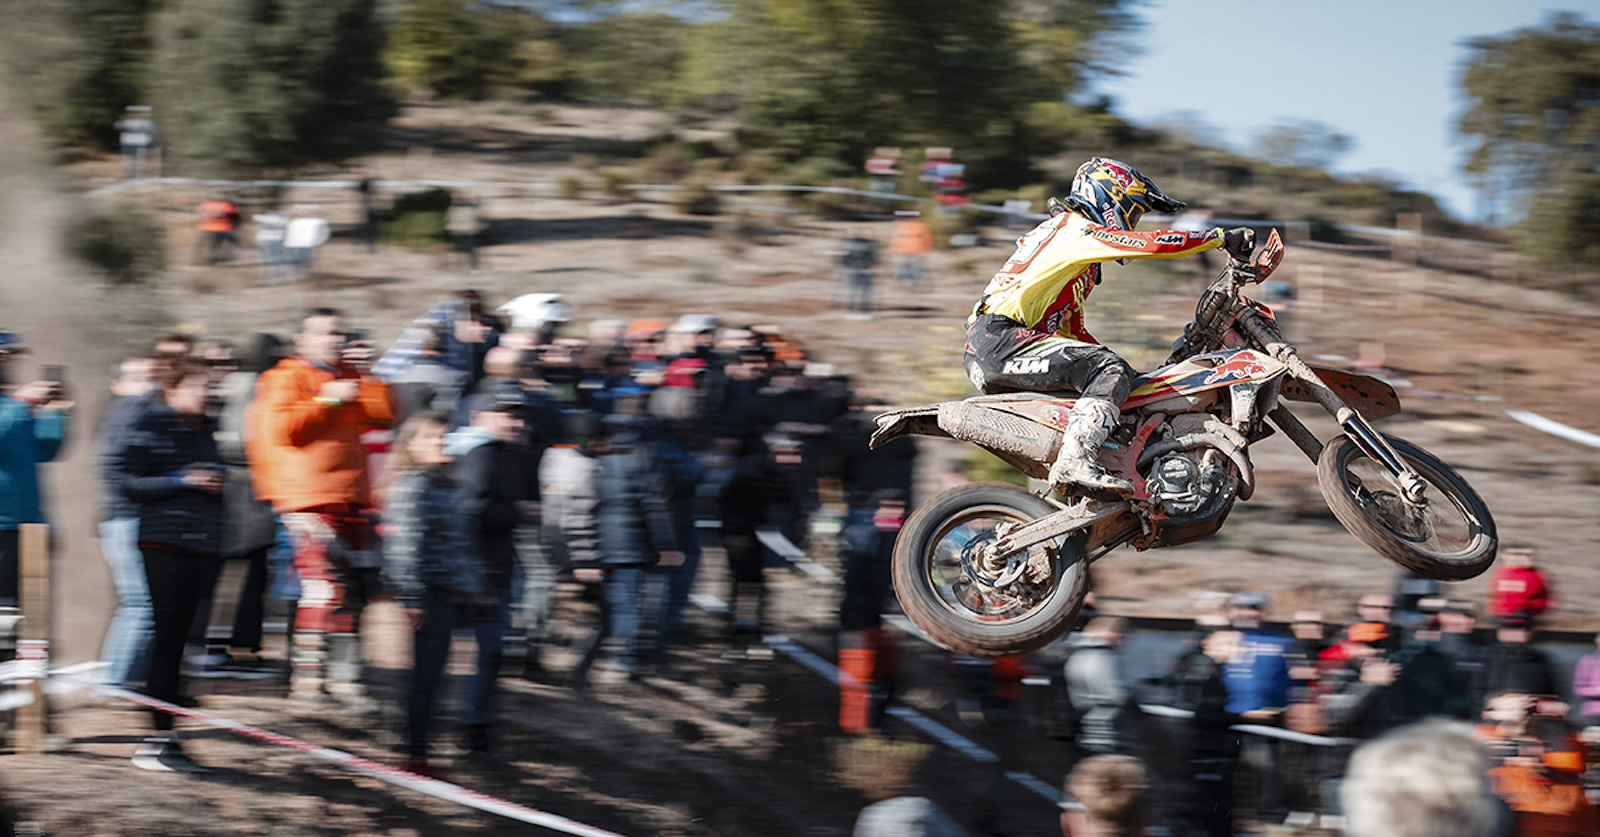 Results feed: ISDE 2019 Day 5 – Garcia's Day and Team USA hold steady